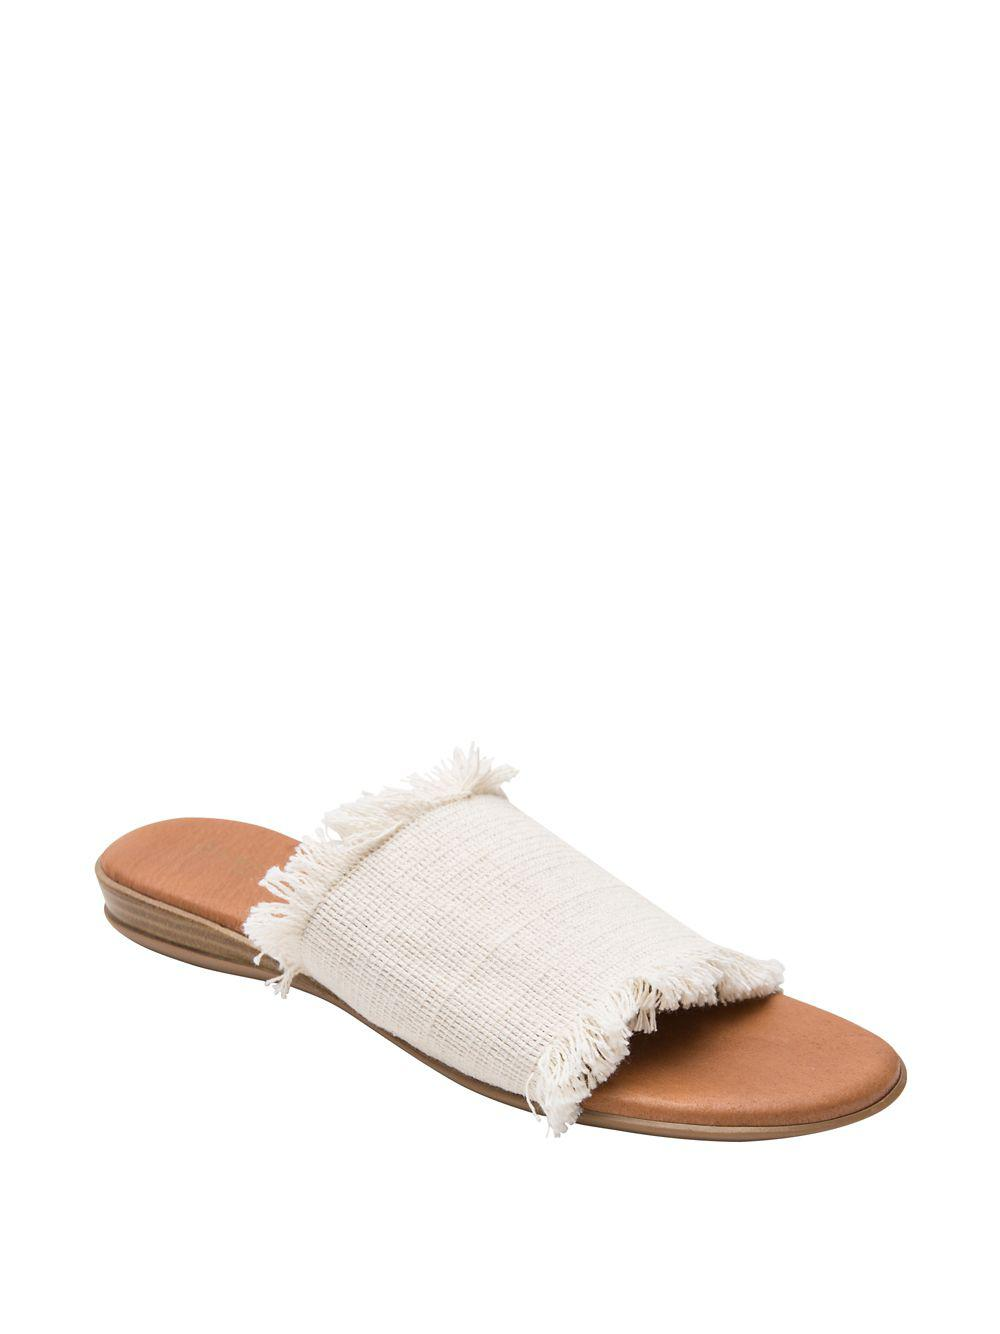 5350a1b9e38601 Lyst - Andre Assous Nirvana Sandals in Natural